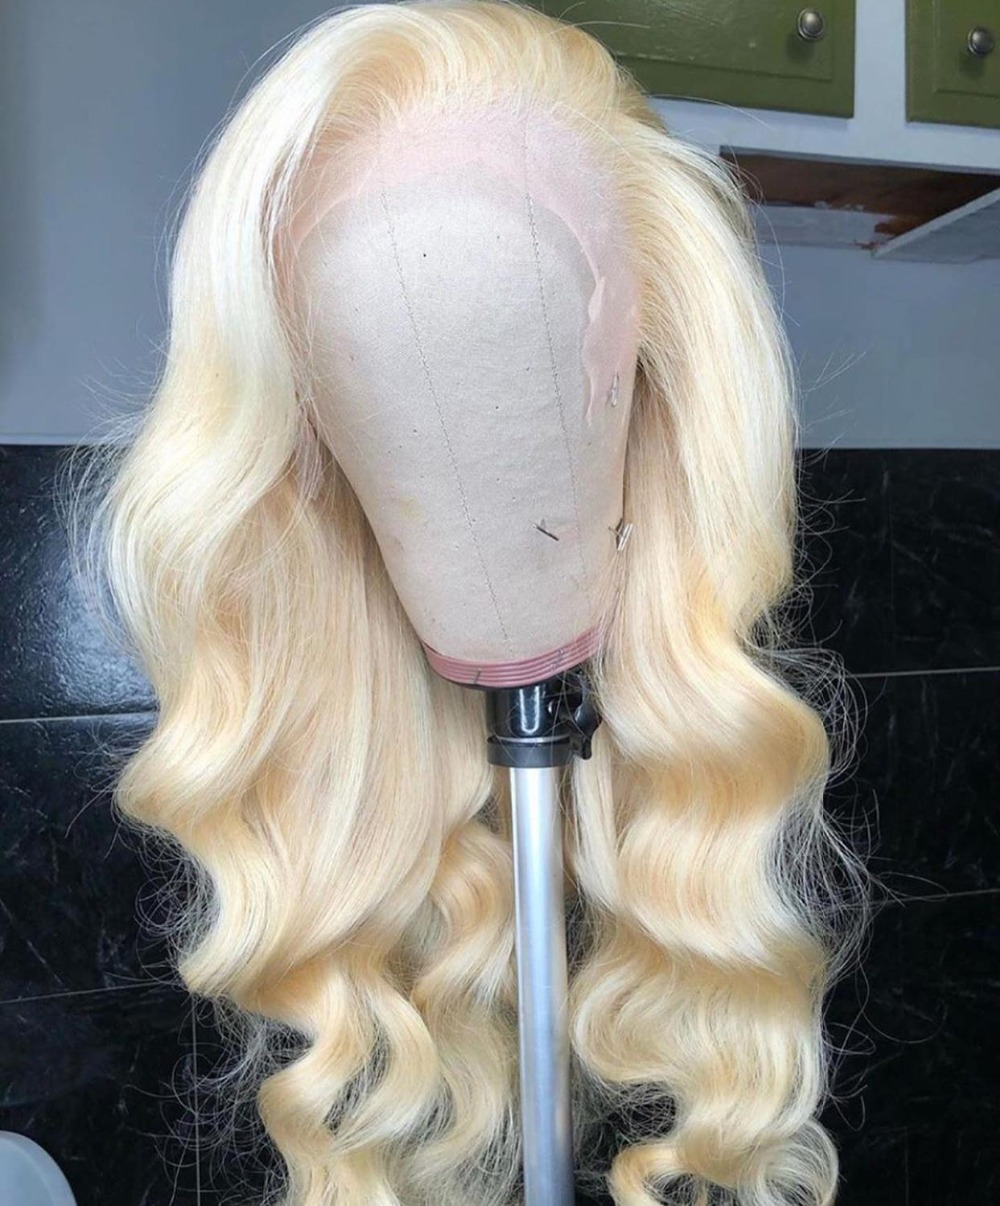 Brazilian-613-Blonde-Transparent-Lace-Front-Wig-Choshim-Remy-Human-Hair-Body-Wave-13x4-Lace-Front